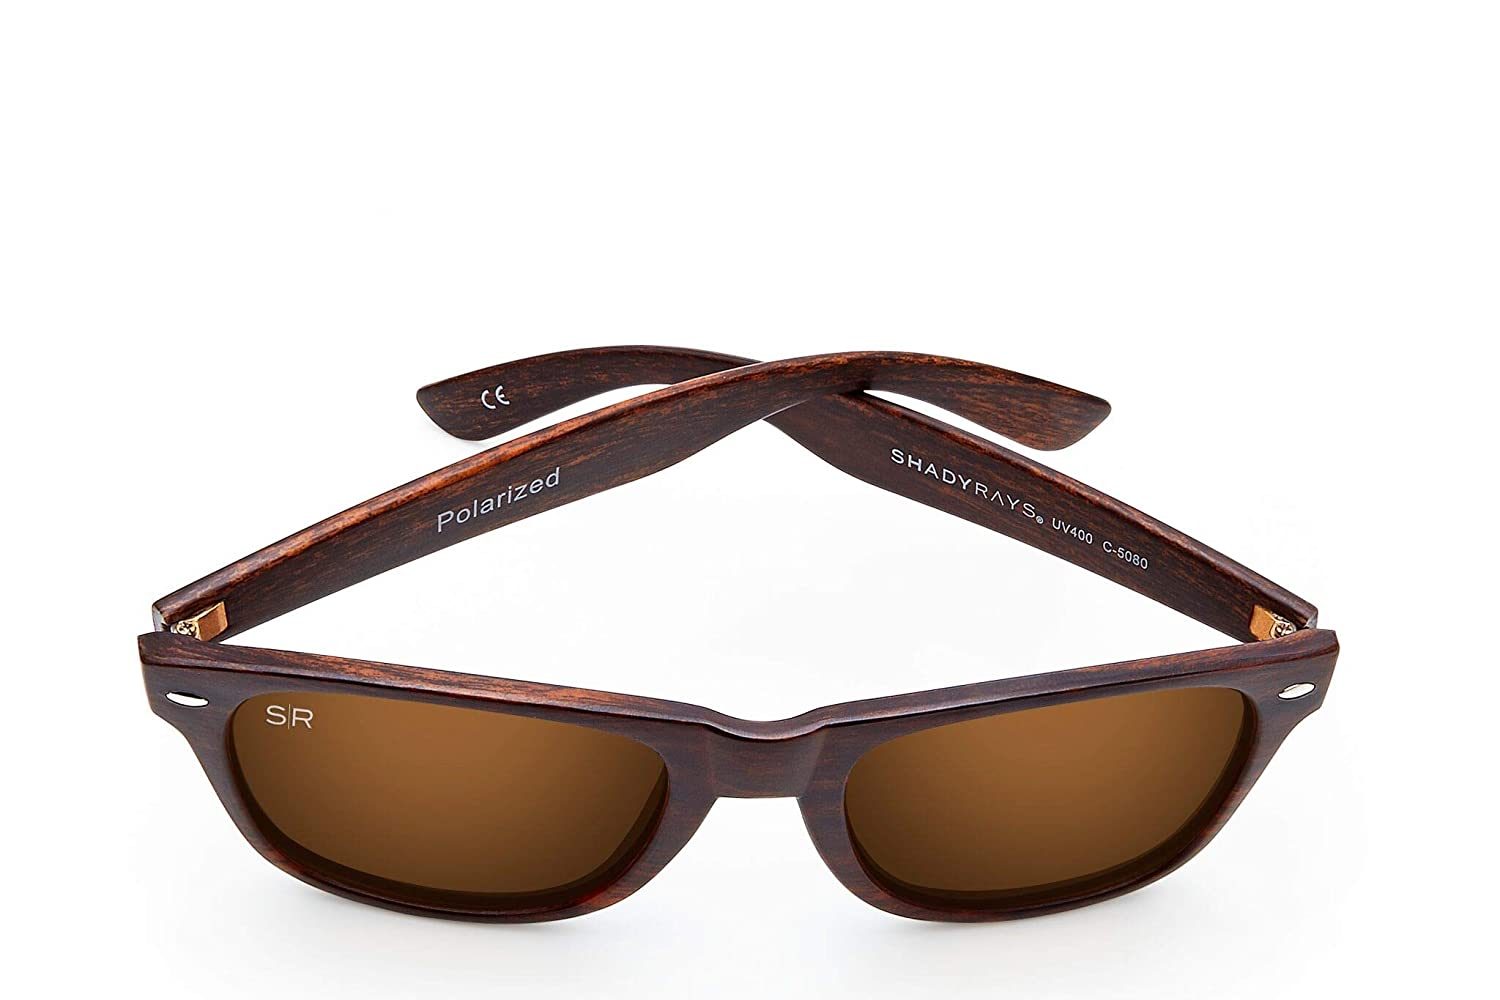 dc4bac79659 Amazon.com  Shady Rays Classic Series Polarized Sunglasses Amber Woods   Clothing